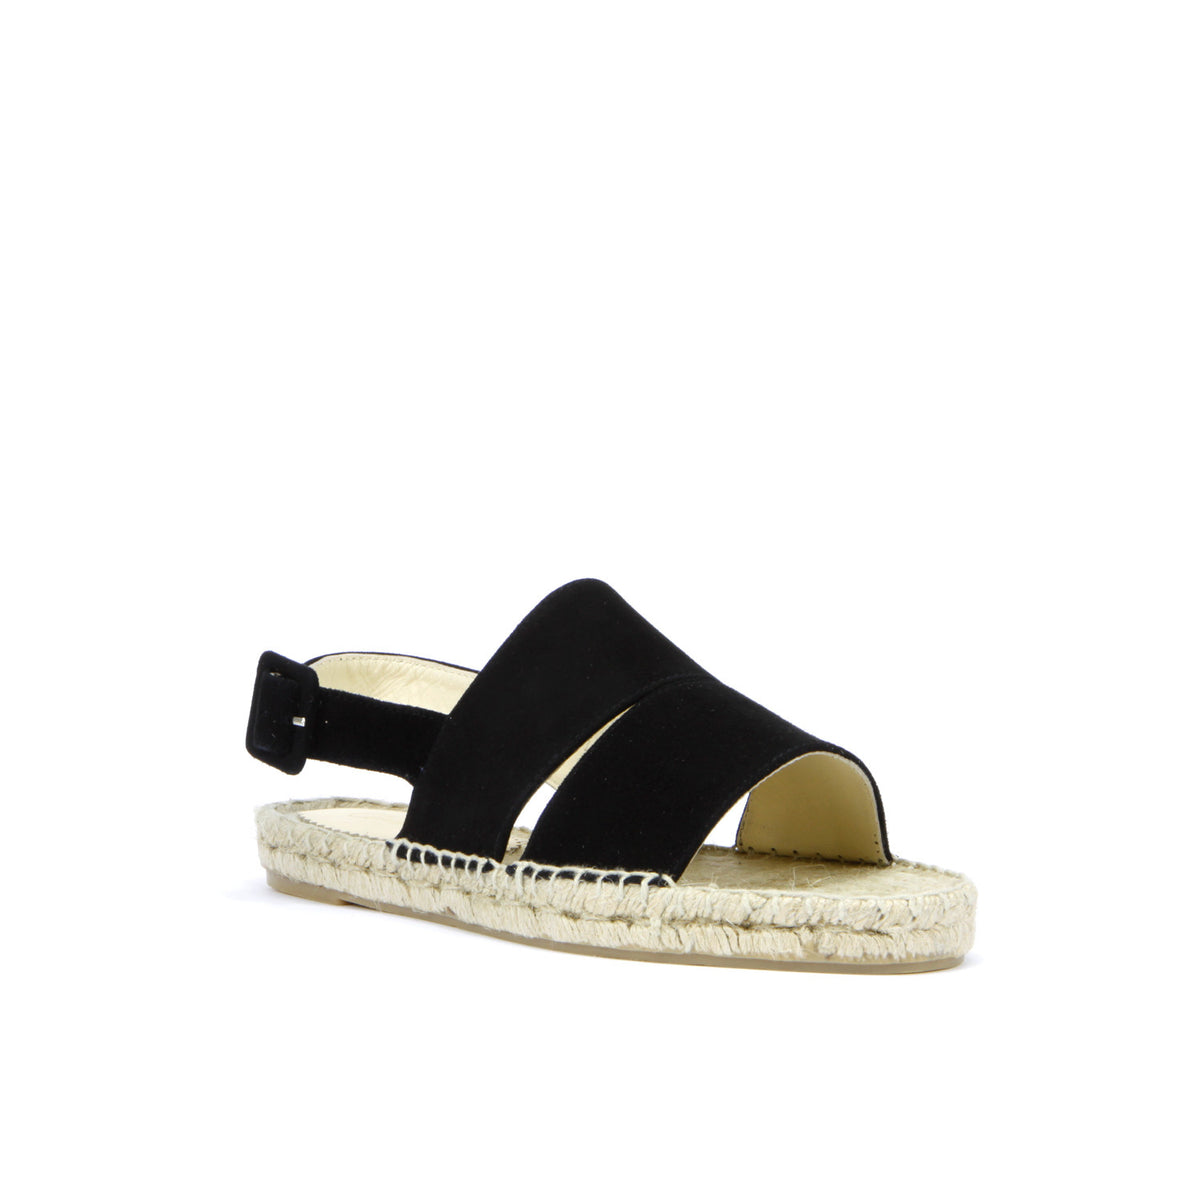 Lara Espadrille in Black Suede